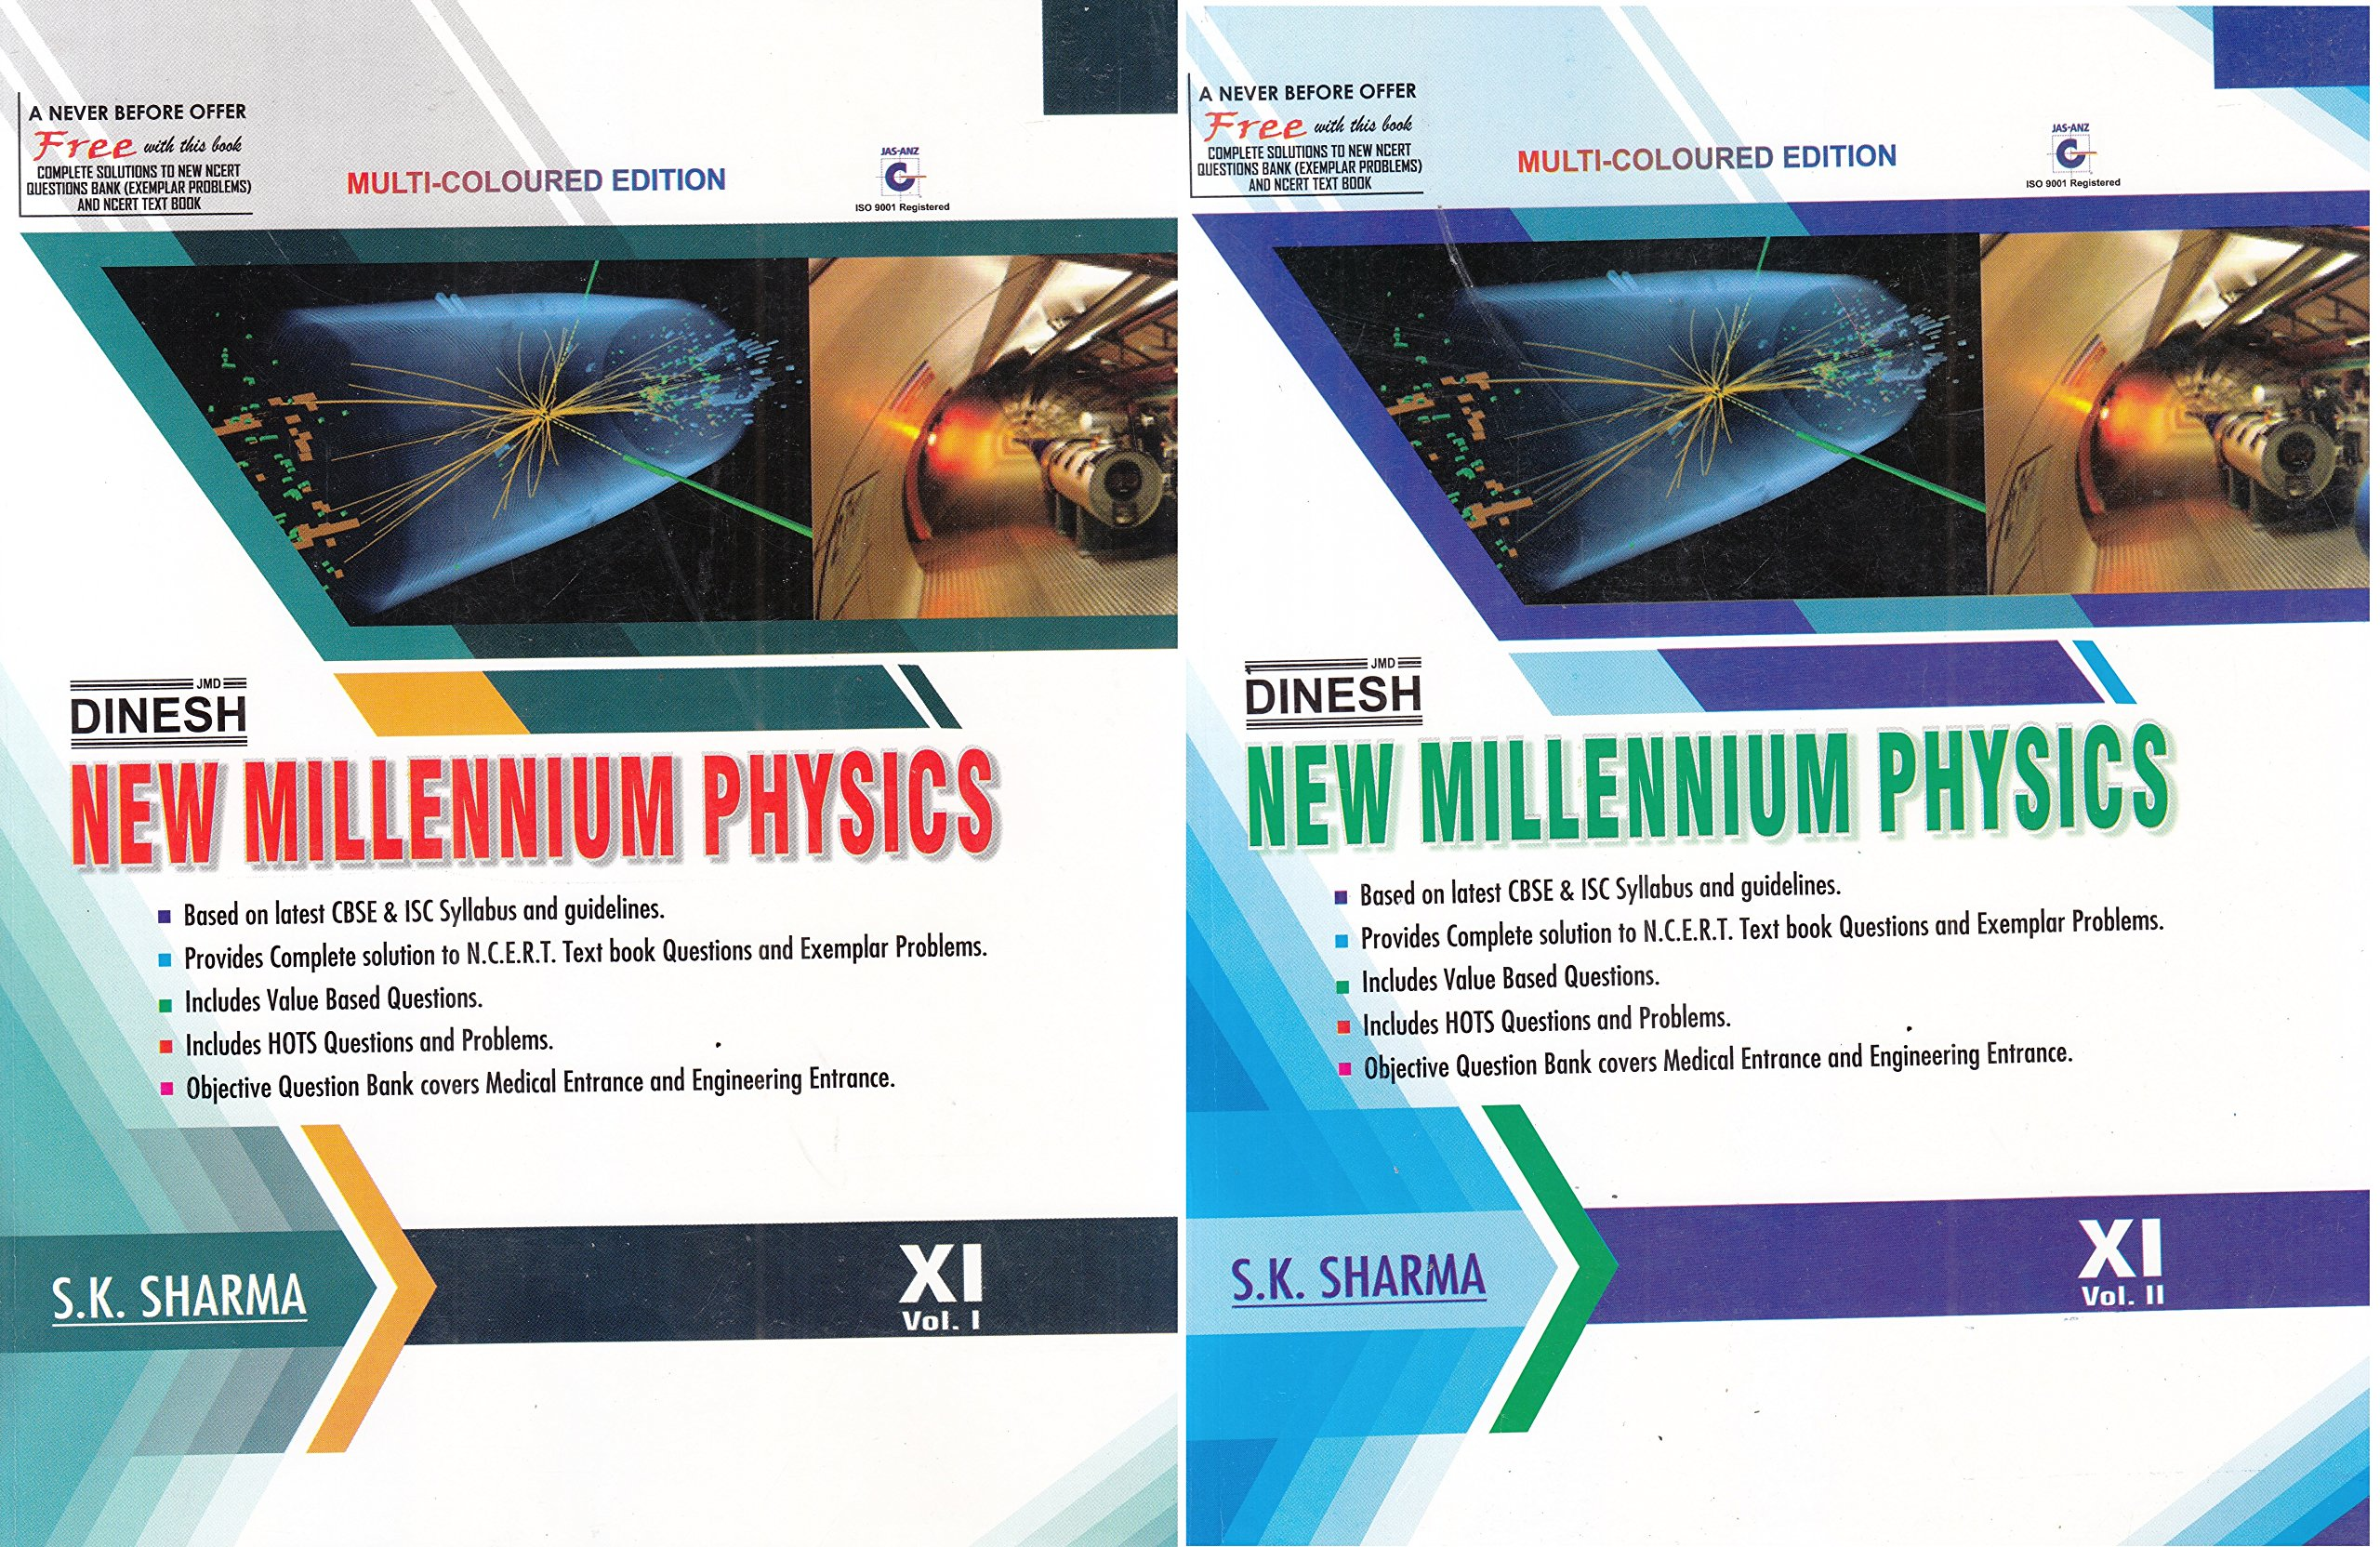 Dinesh New Millennium Physics for Class 11 - 2018-2019